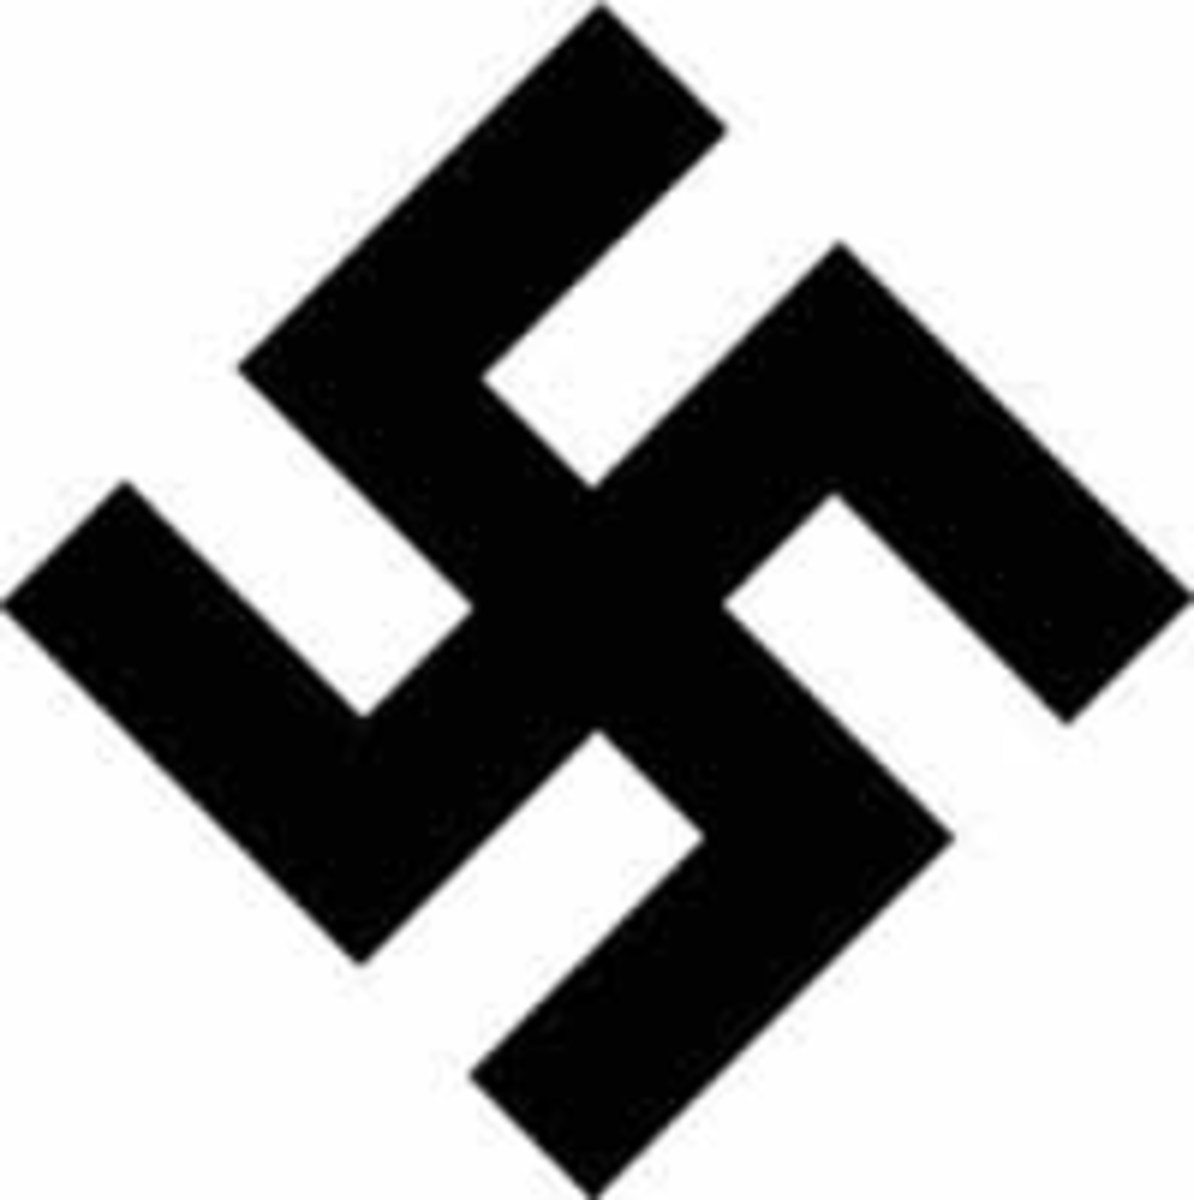 The Irony of Nazi Symbolism: Appropriating From the Cultures They Hate